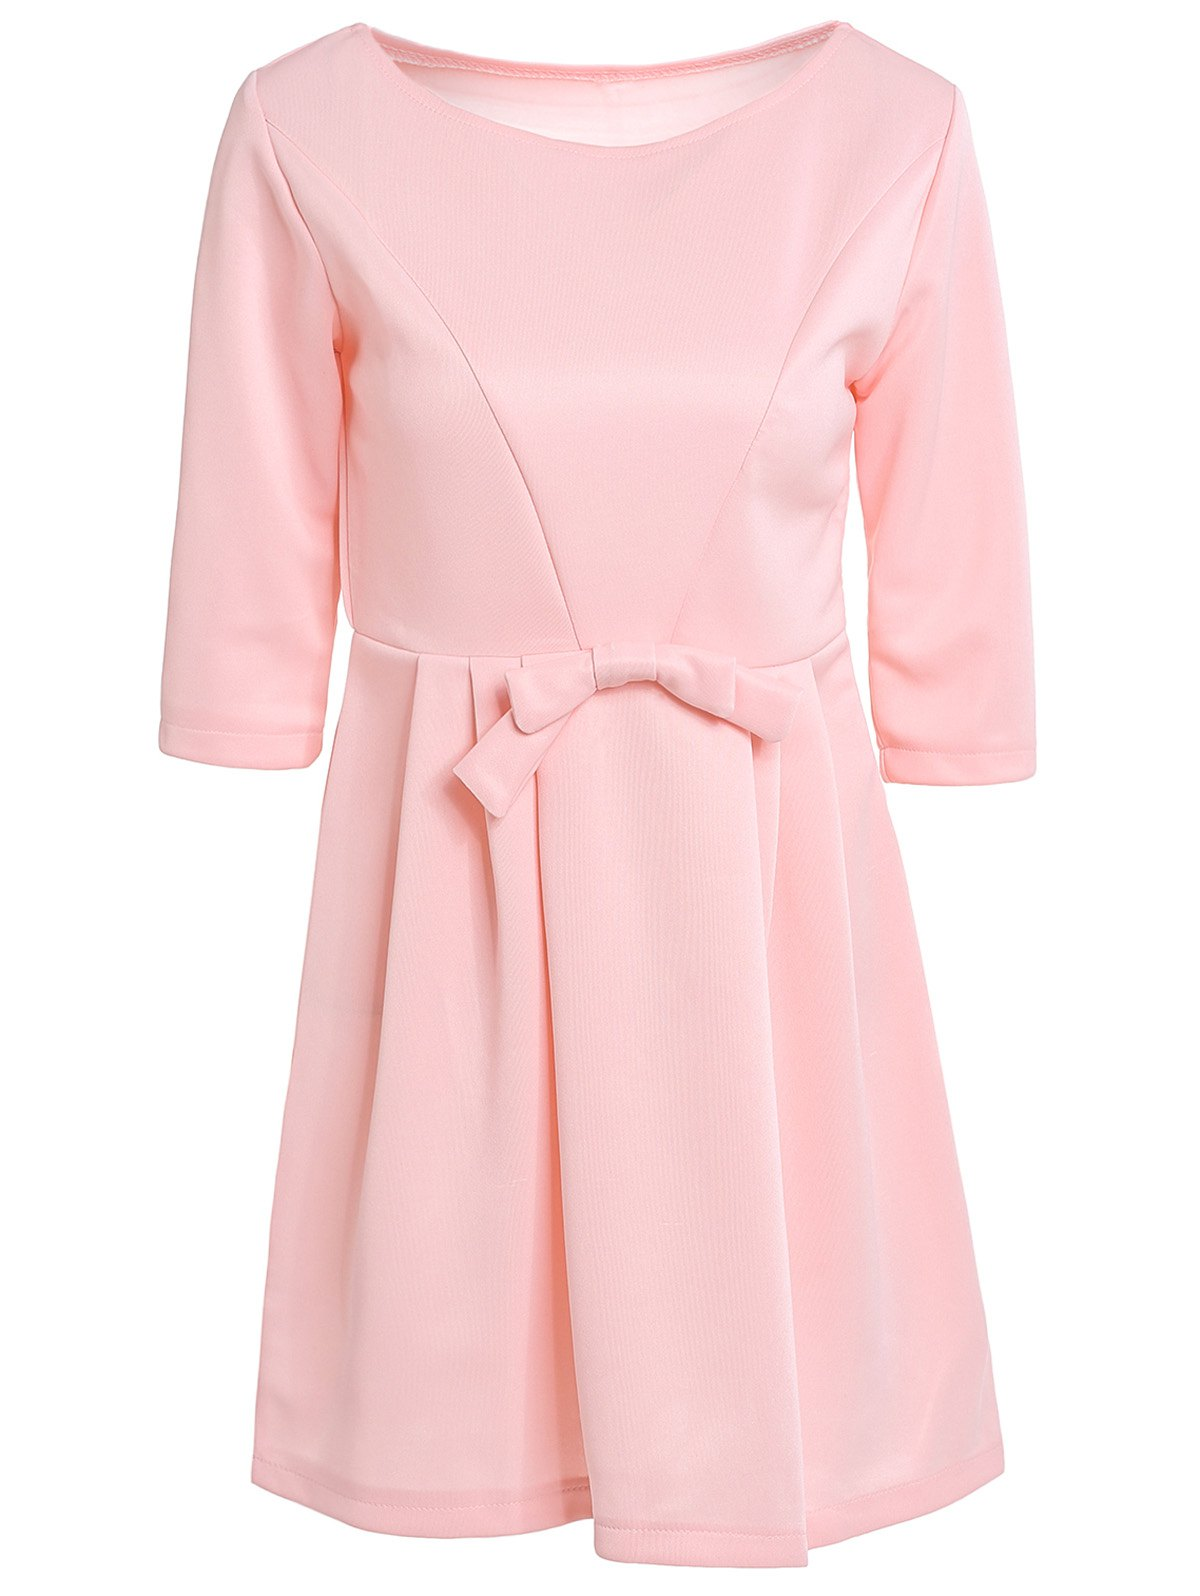 Women's Jewel Neck 3/4 Sleeve Solid Color Bowknot Decorated Dress - PINK S